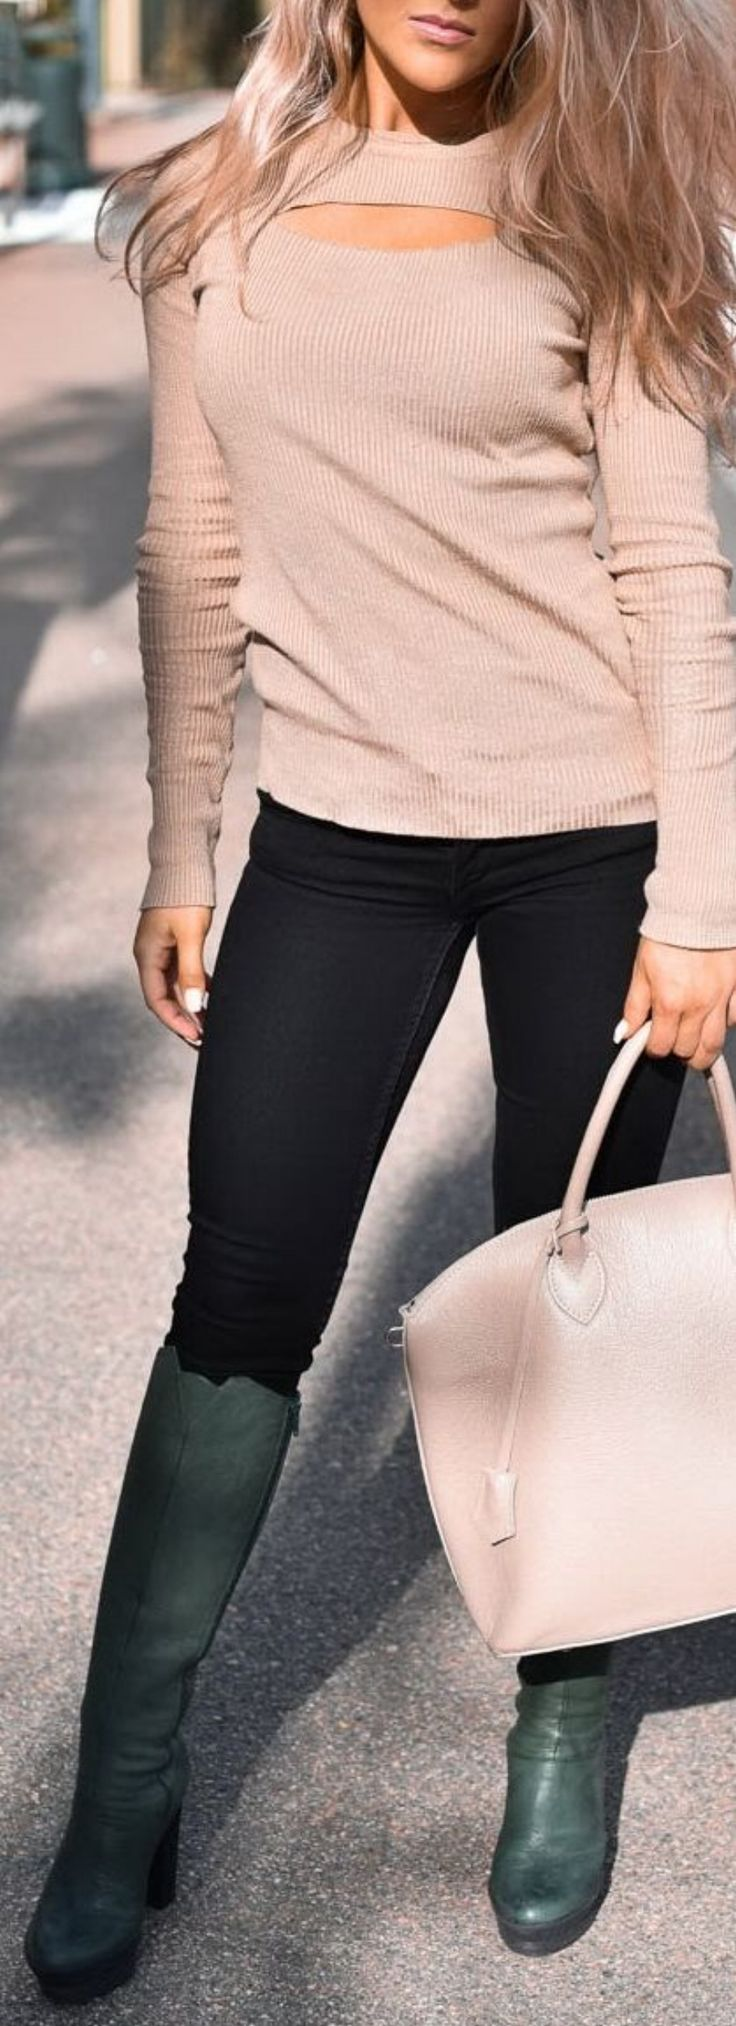 #Black + #Camel + Army #Green #Boots // #trending #outfits